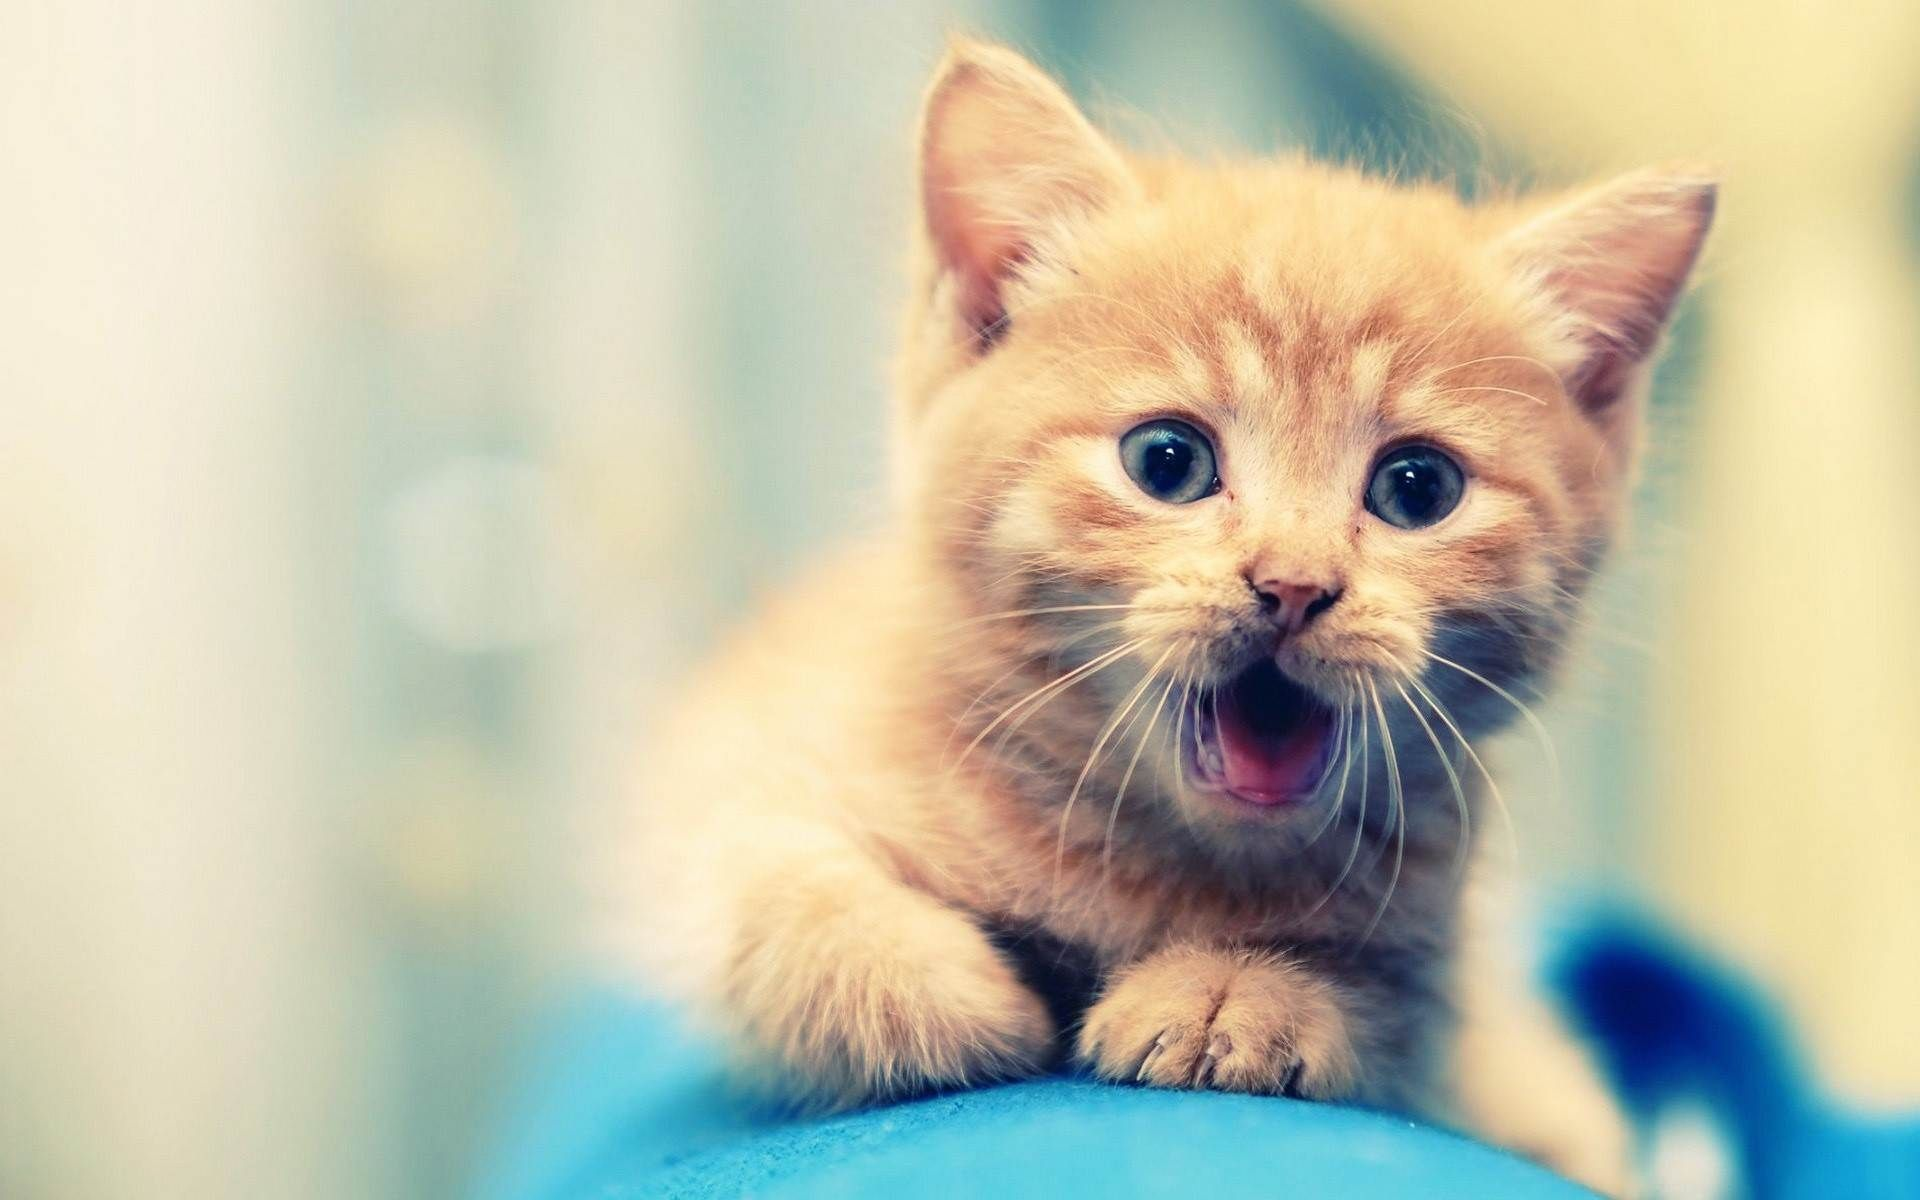 Cute Baby Animal Wallpapers Hd Wallpapers Backgrounds Images Art Photos Hd Animals Wallpapers Adorable Wallpapers Animals Animal Wallpaper Baby Animals